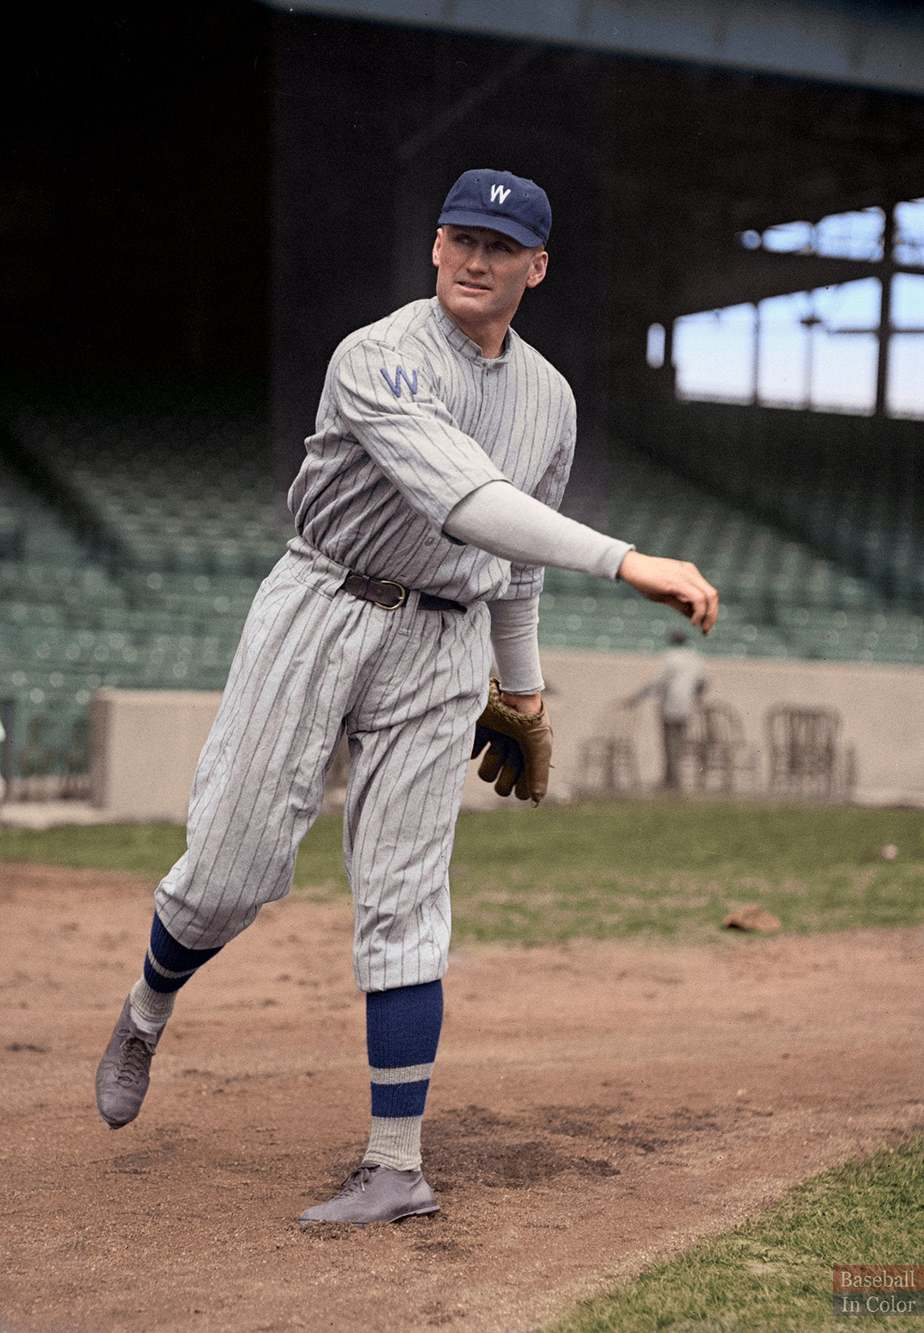 Walter Johnson best baseball players of all time